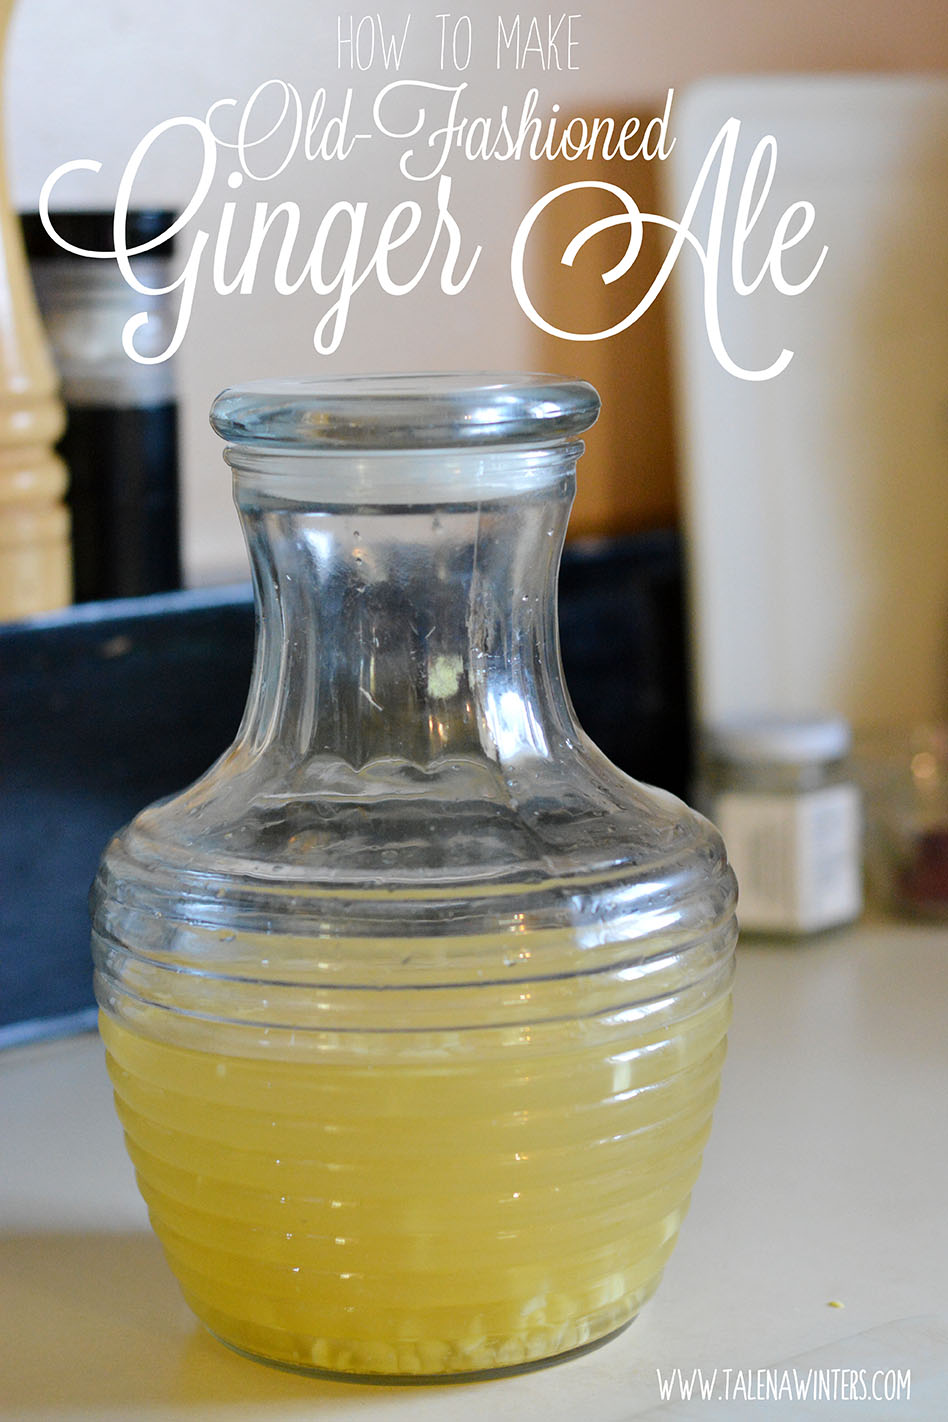 How to Make Old-Fashioned Ginger Ale recipe - tasty, easy, and beneficial!